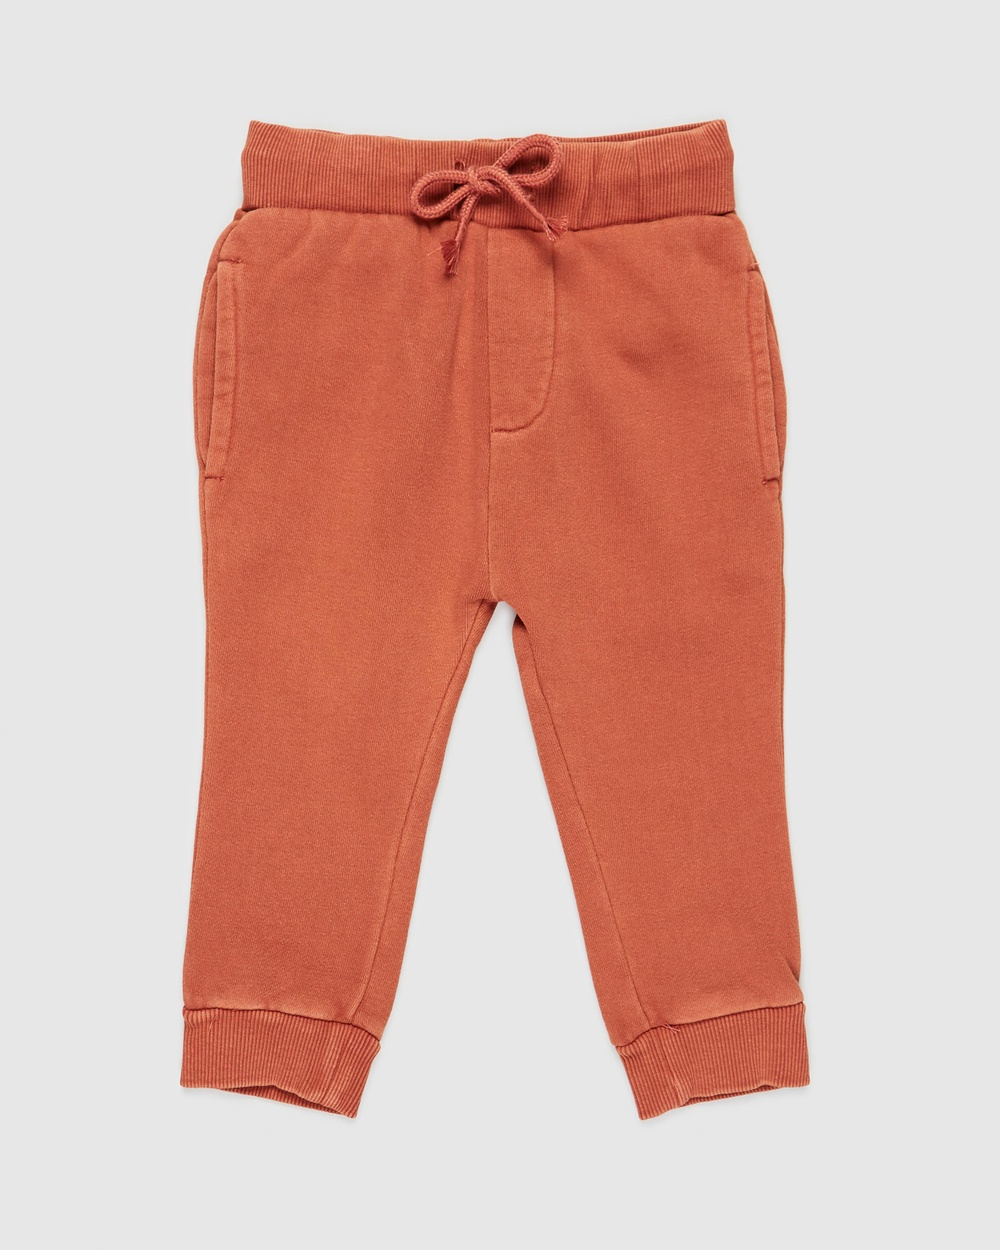 Animal Crackers Stand Out Pants Babies Sweatpants Brown